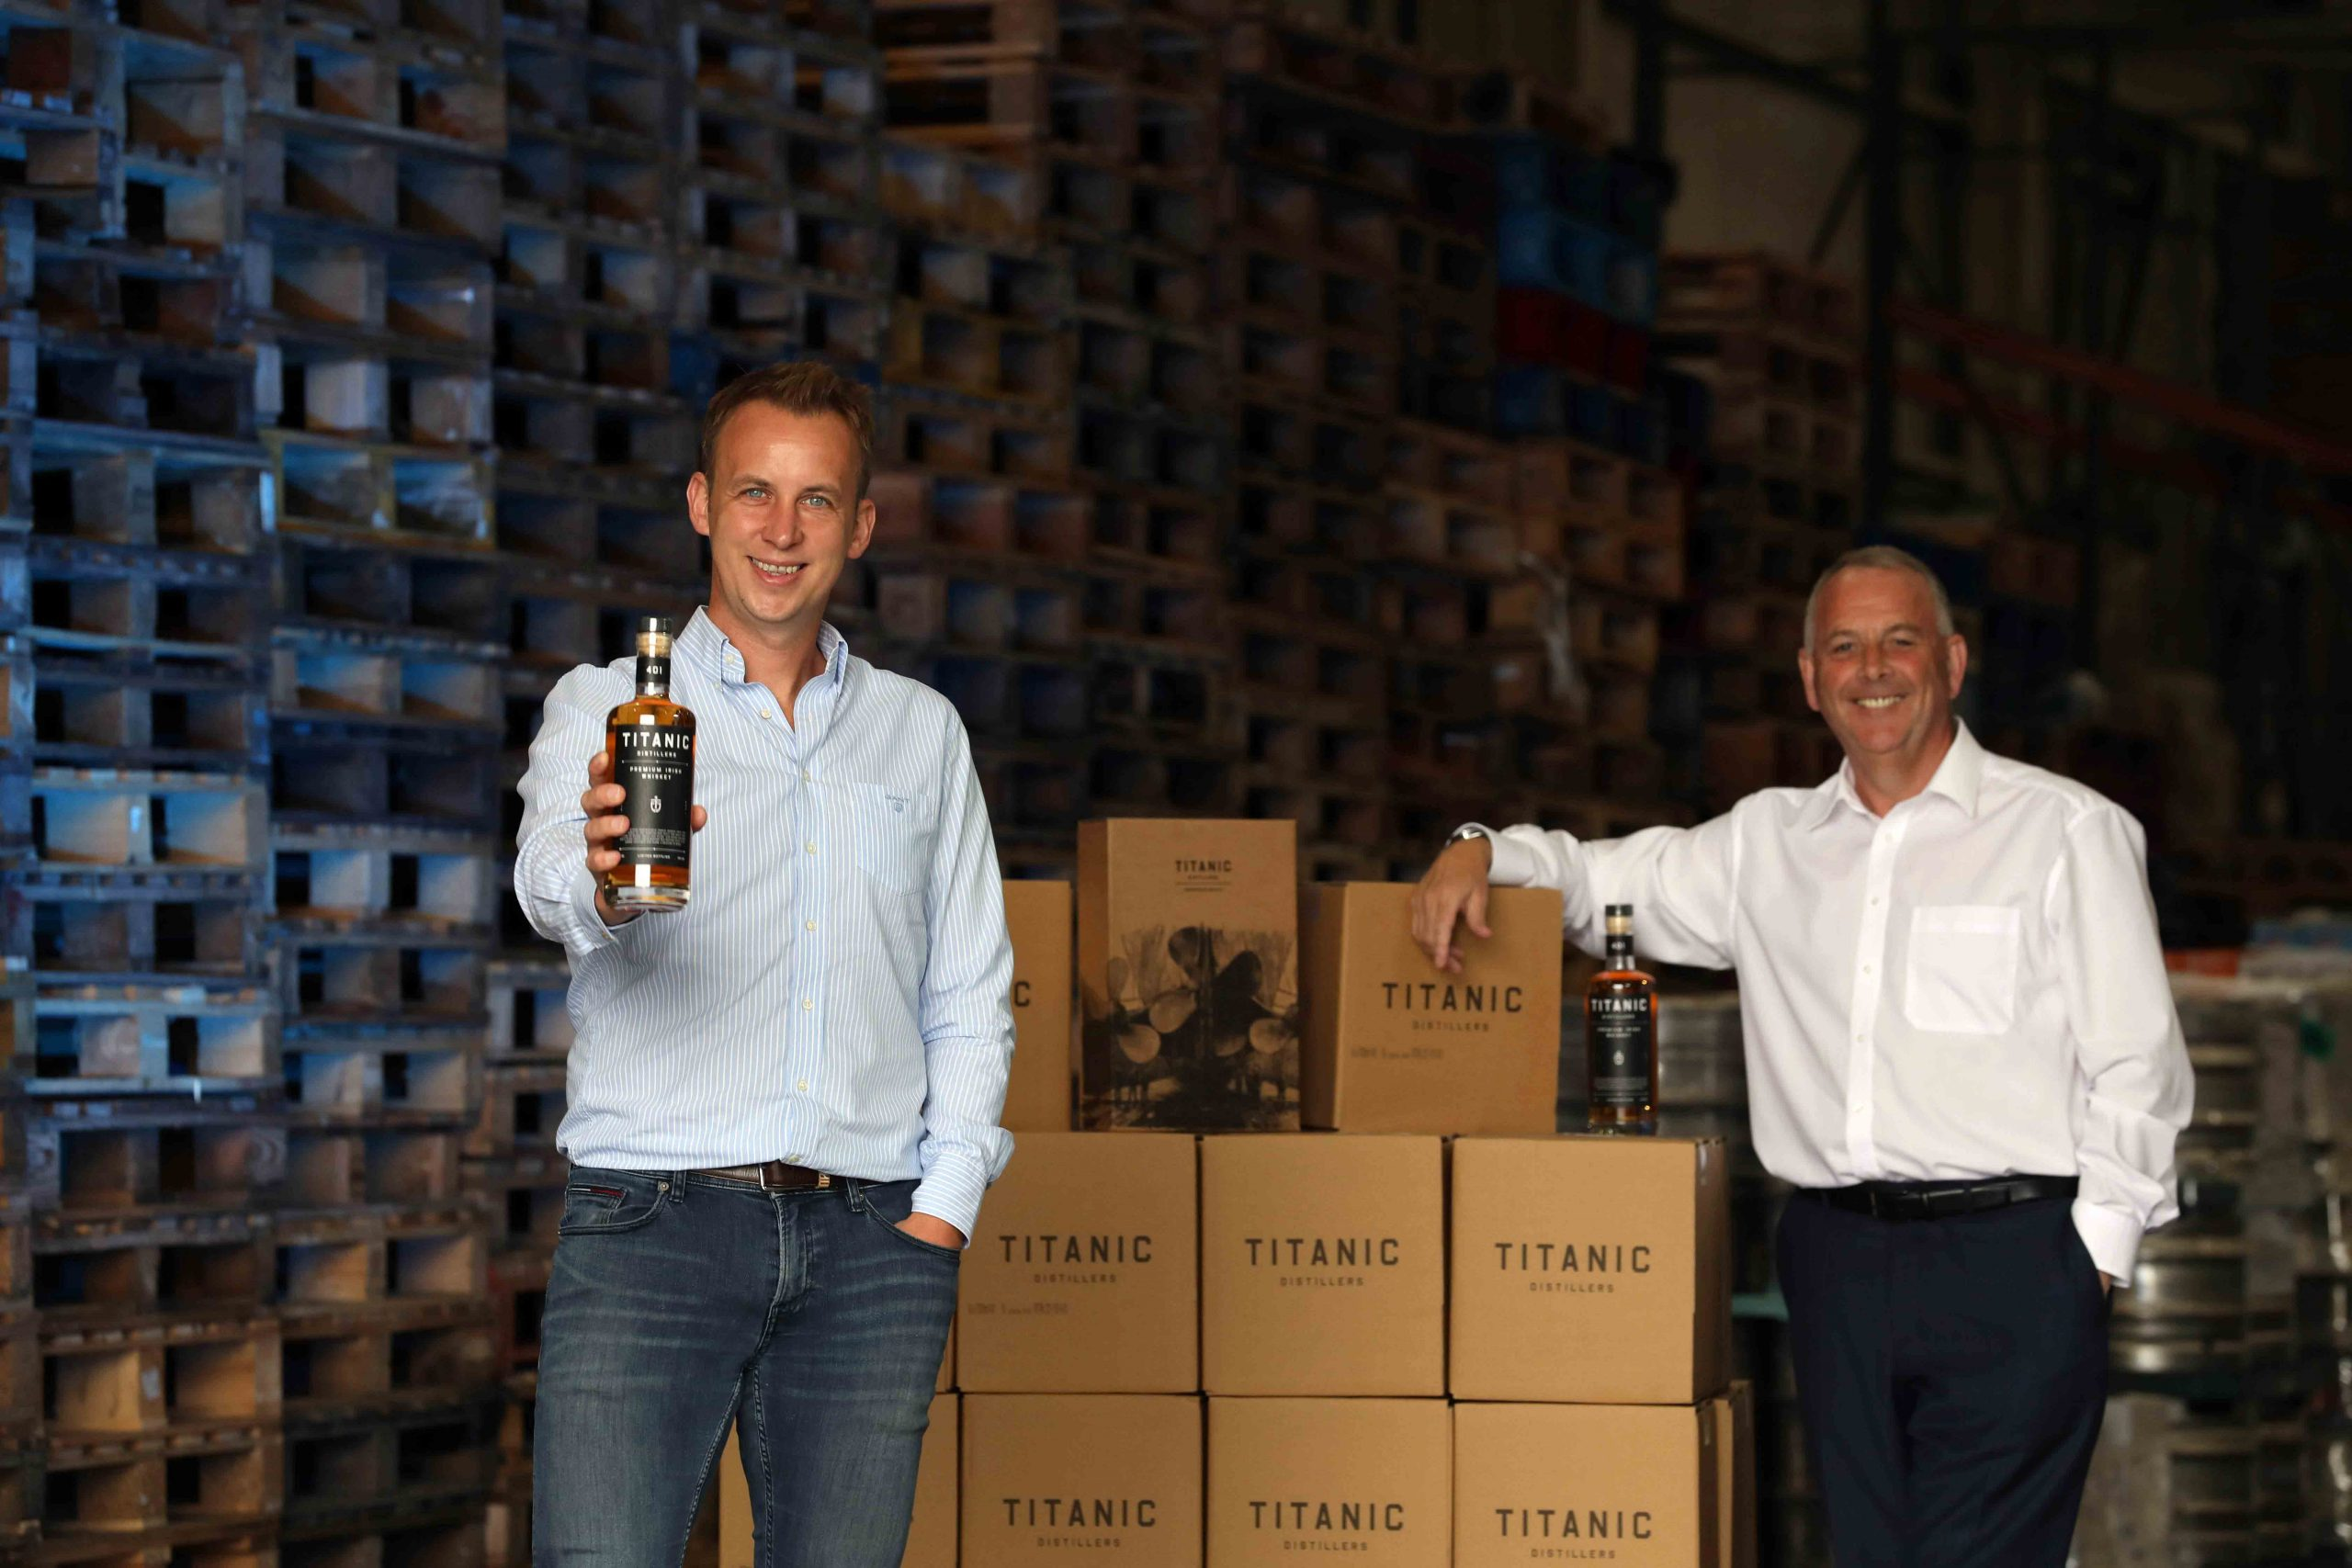 WHISKEY BUSINESS: Leading drinks distributor United Wines has secured an exclusive all-Ireland distribution deal with Titanic Distillers, Belfast's newest premium Irish Whiskey brand. The partnership will see Craigavon-based United Wines handle all distribution for the new whiskey through its extensive On- and Off-Trade customer base across the island of Ireland – which includes more than 1,000 bars, restaurants, hotels, off licenses, cash & carries, regional wholesalers and national multiples. Launching the partnership at United Wines' 75,000 square foot warehouse in Craigavon are Titanic Distillers Commercial Director Stephen Symington (left) and United Wines Managing Director Martin McAuley. Titanic Distillers Premium Irish Whiskey is described as 'full and rich with a smoky hint and a lingering finish' and is available to order now from United Wines on +44 (0) 28 3831 6555.